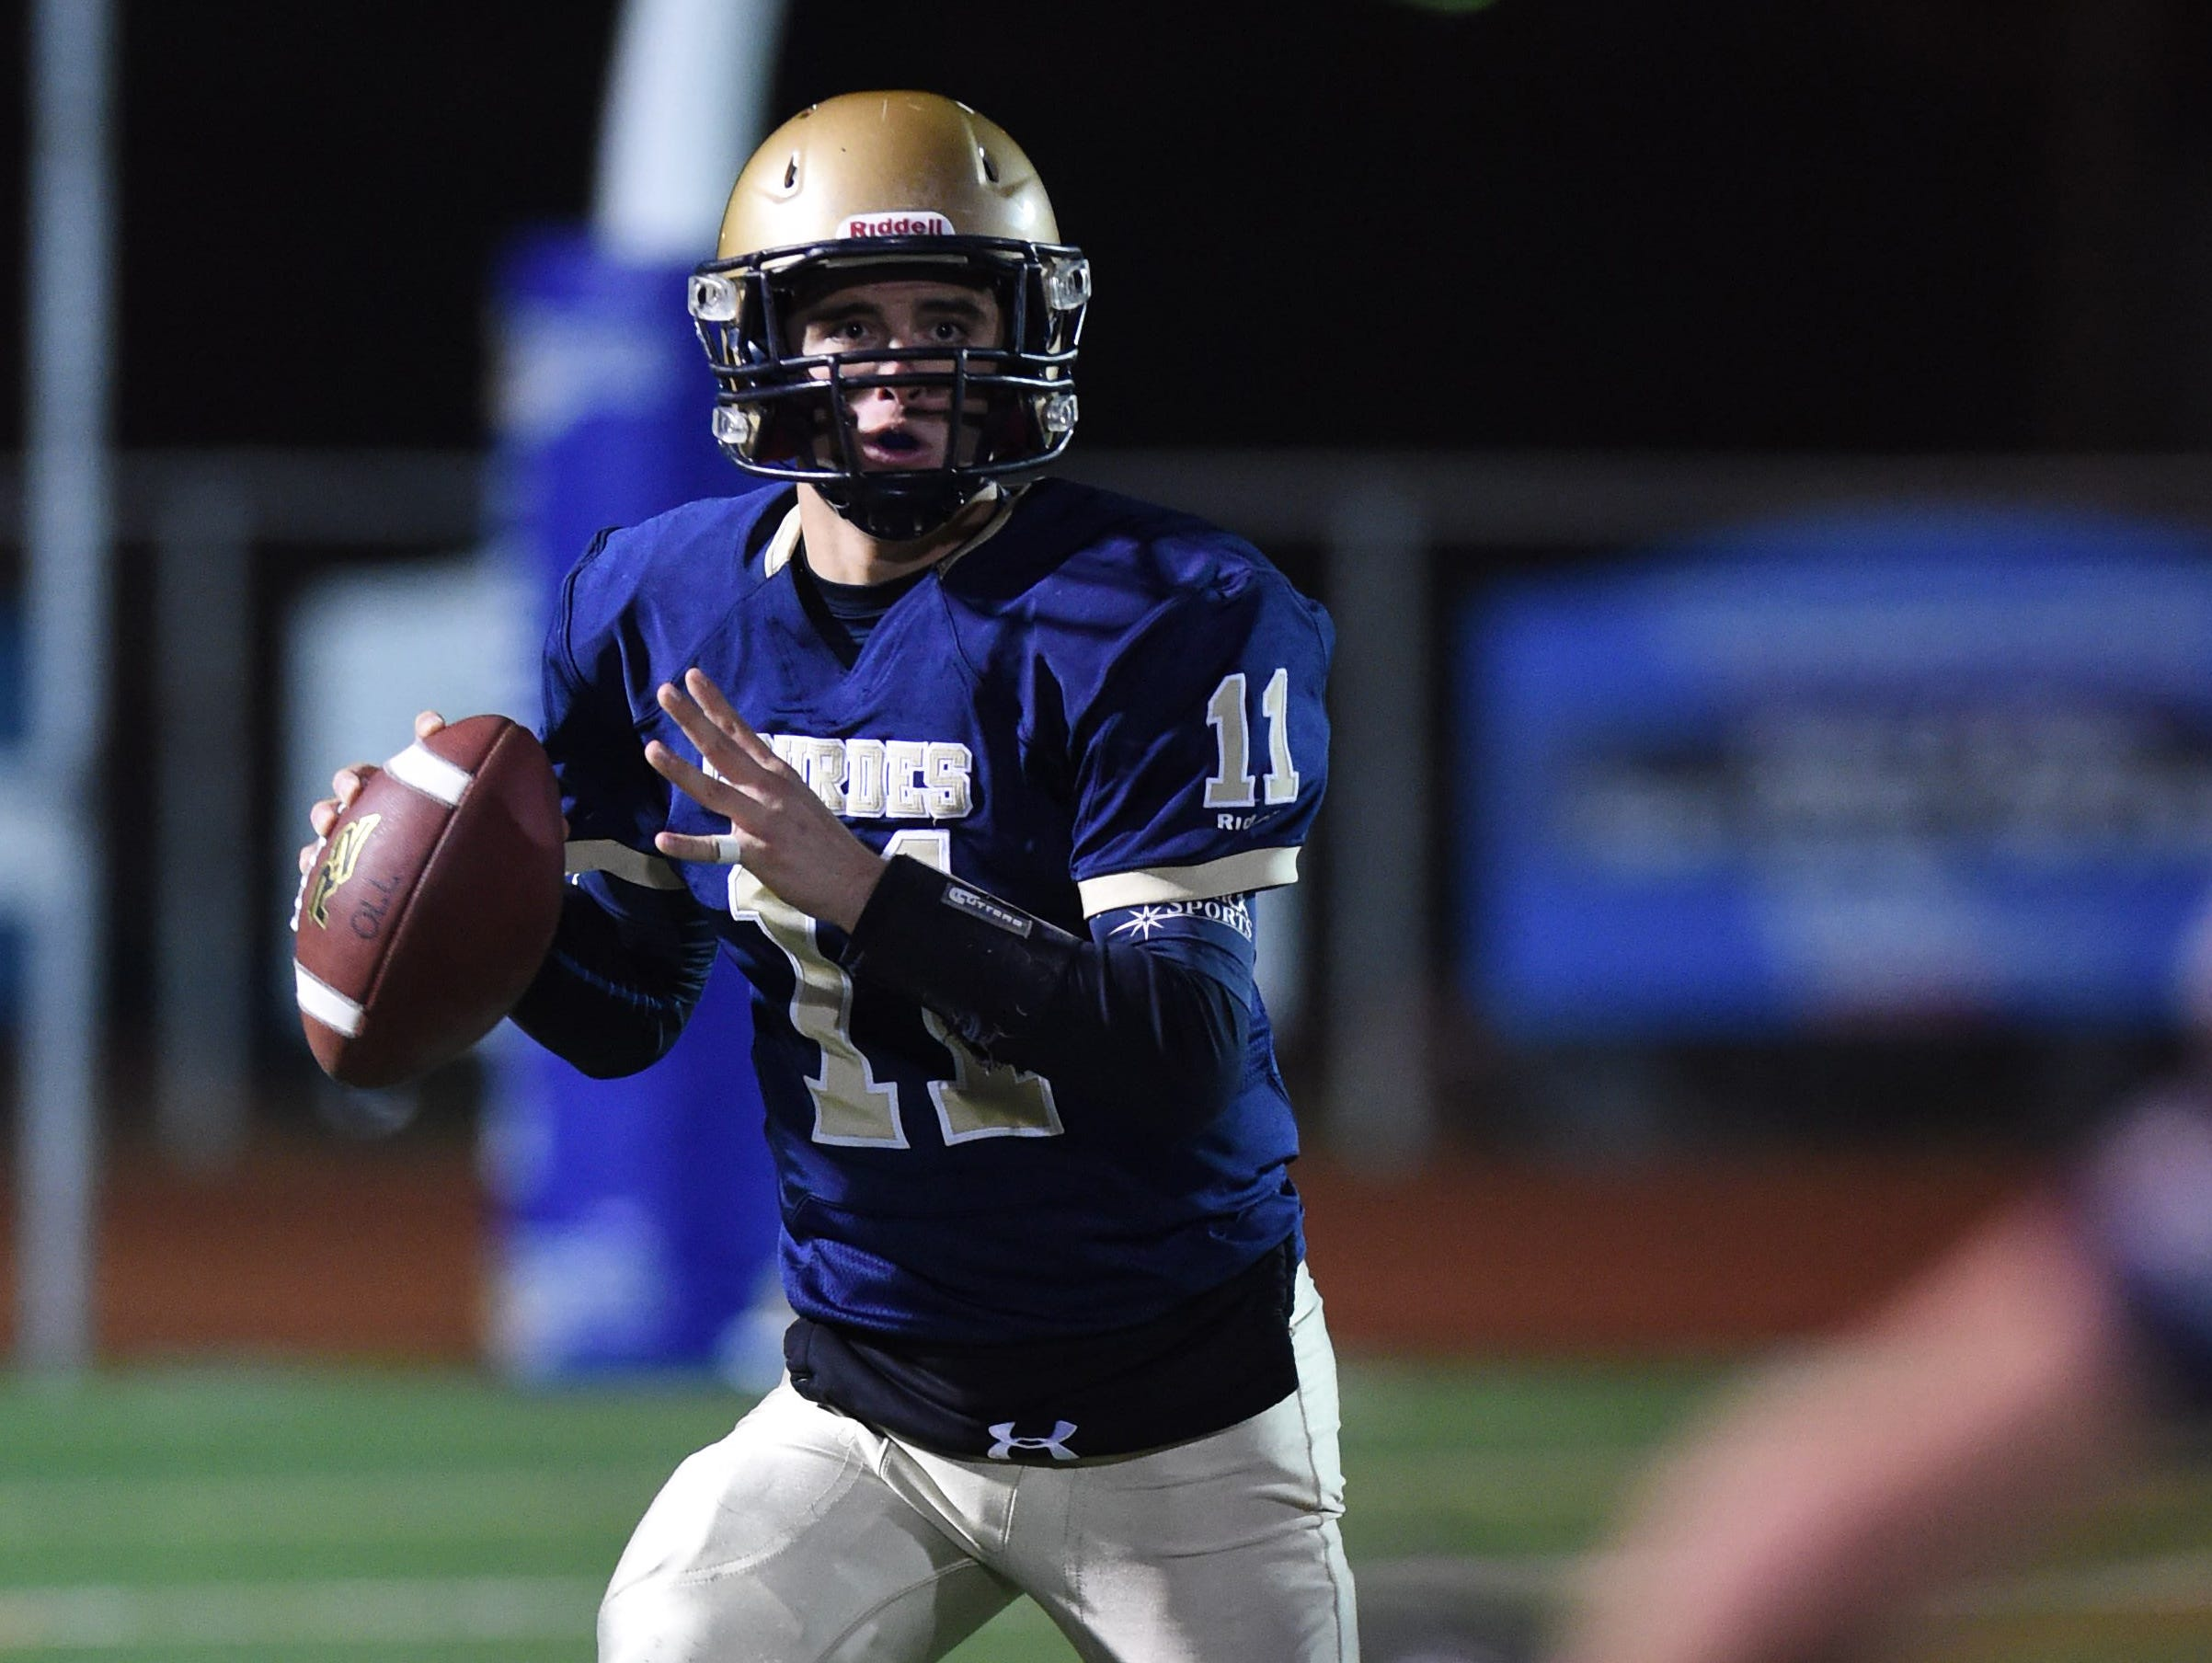 Our Lady of Lourdes High School's Dean Rotger looks to pass the ball during the state Class A semifinals against Amsterdam at Dietz Stadium.